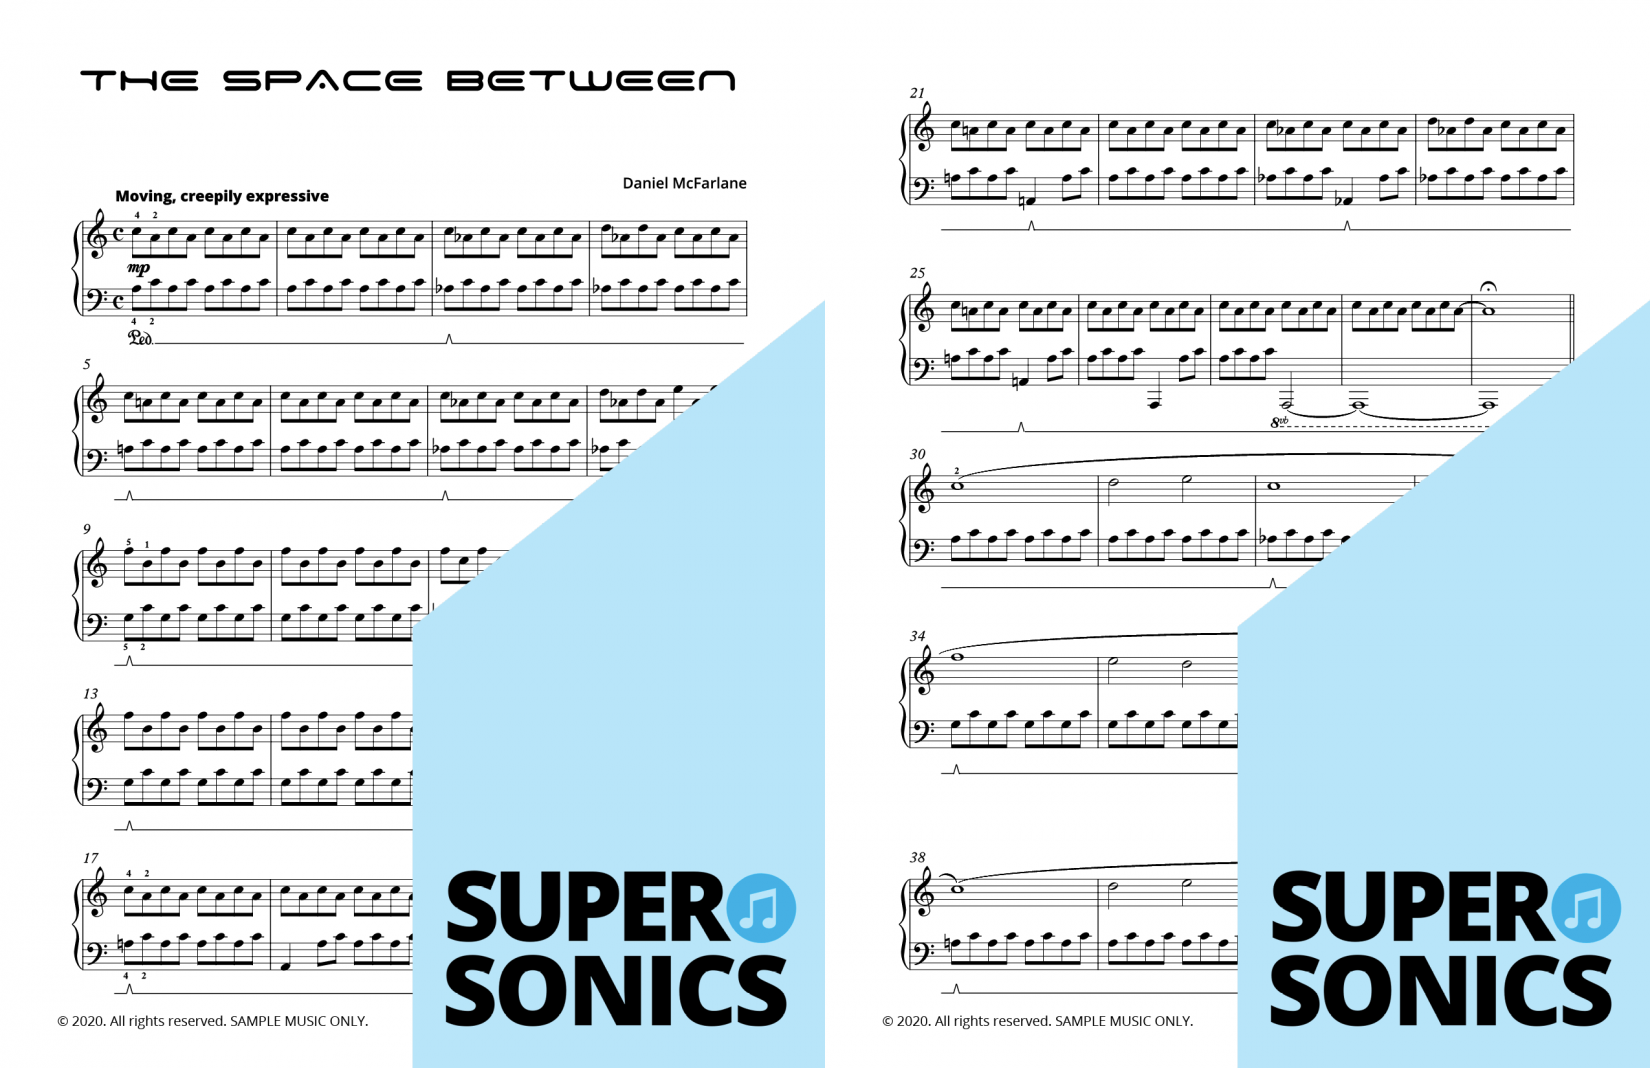 Supersonics Piano Method Level 5 Solos sample